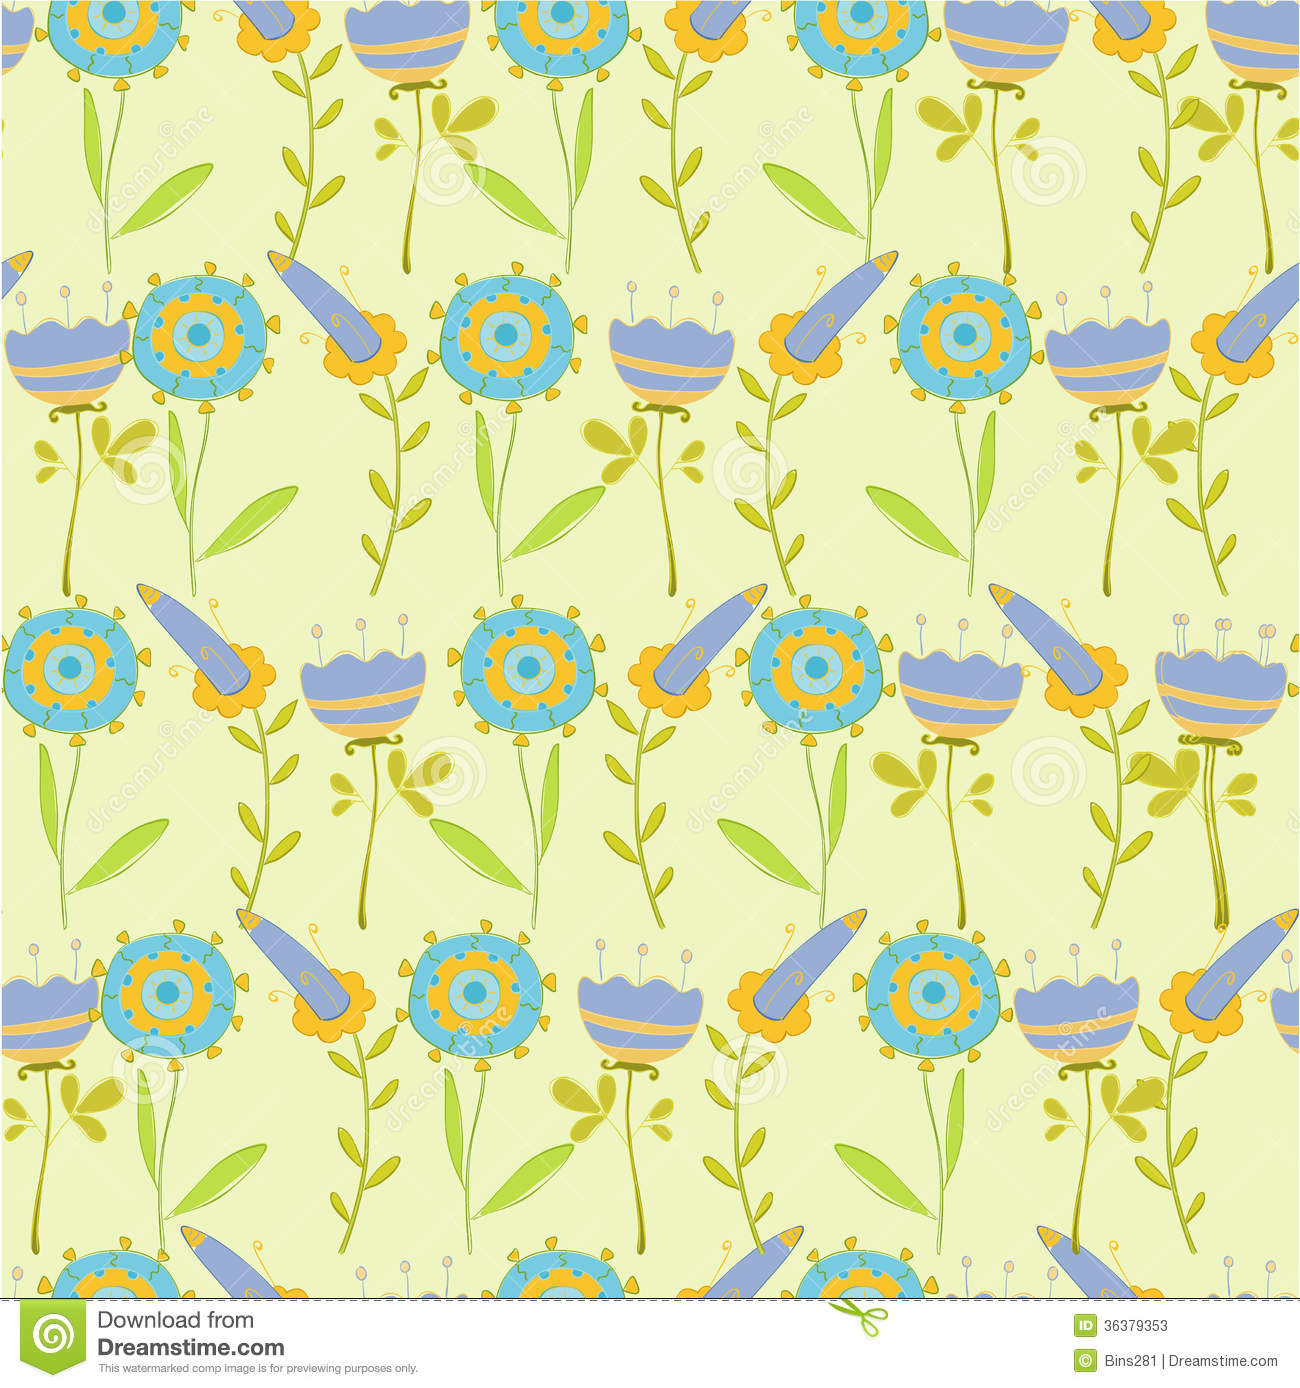 Simple flower pattern background - photo#19